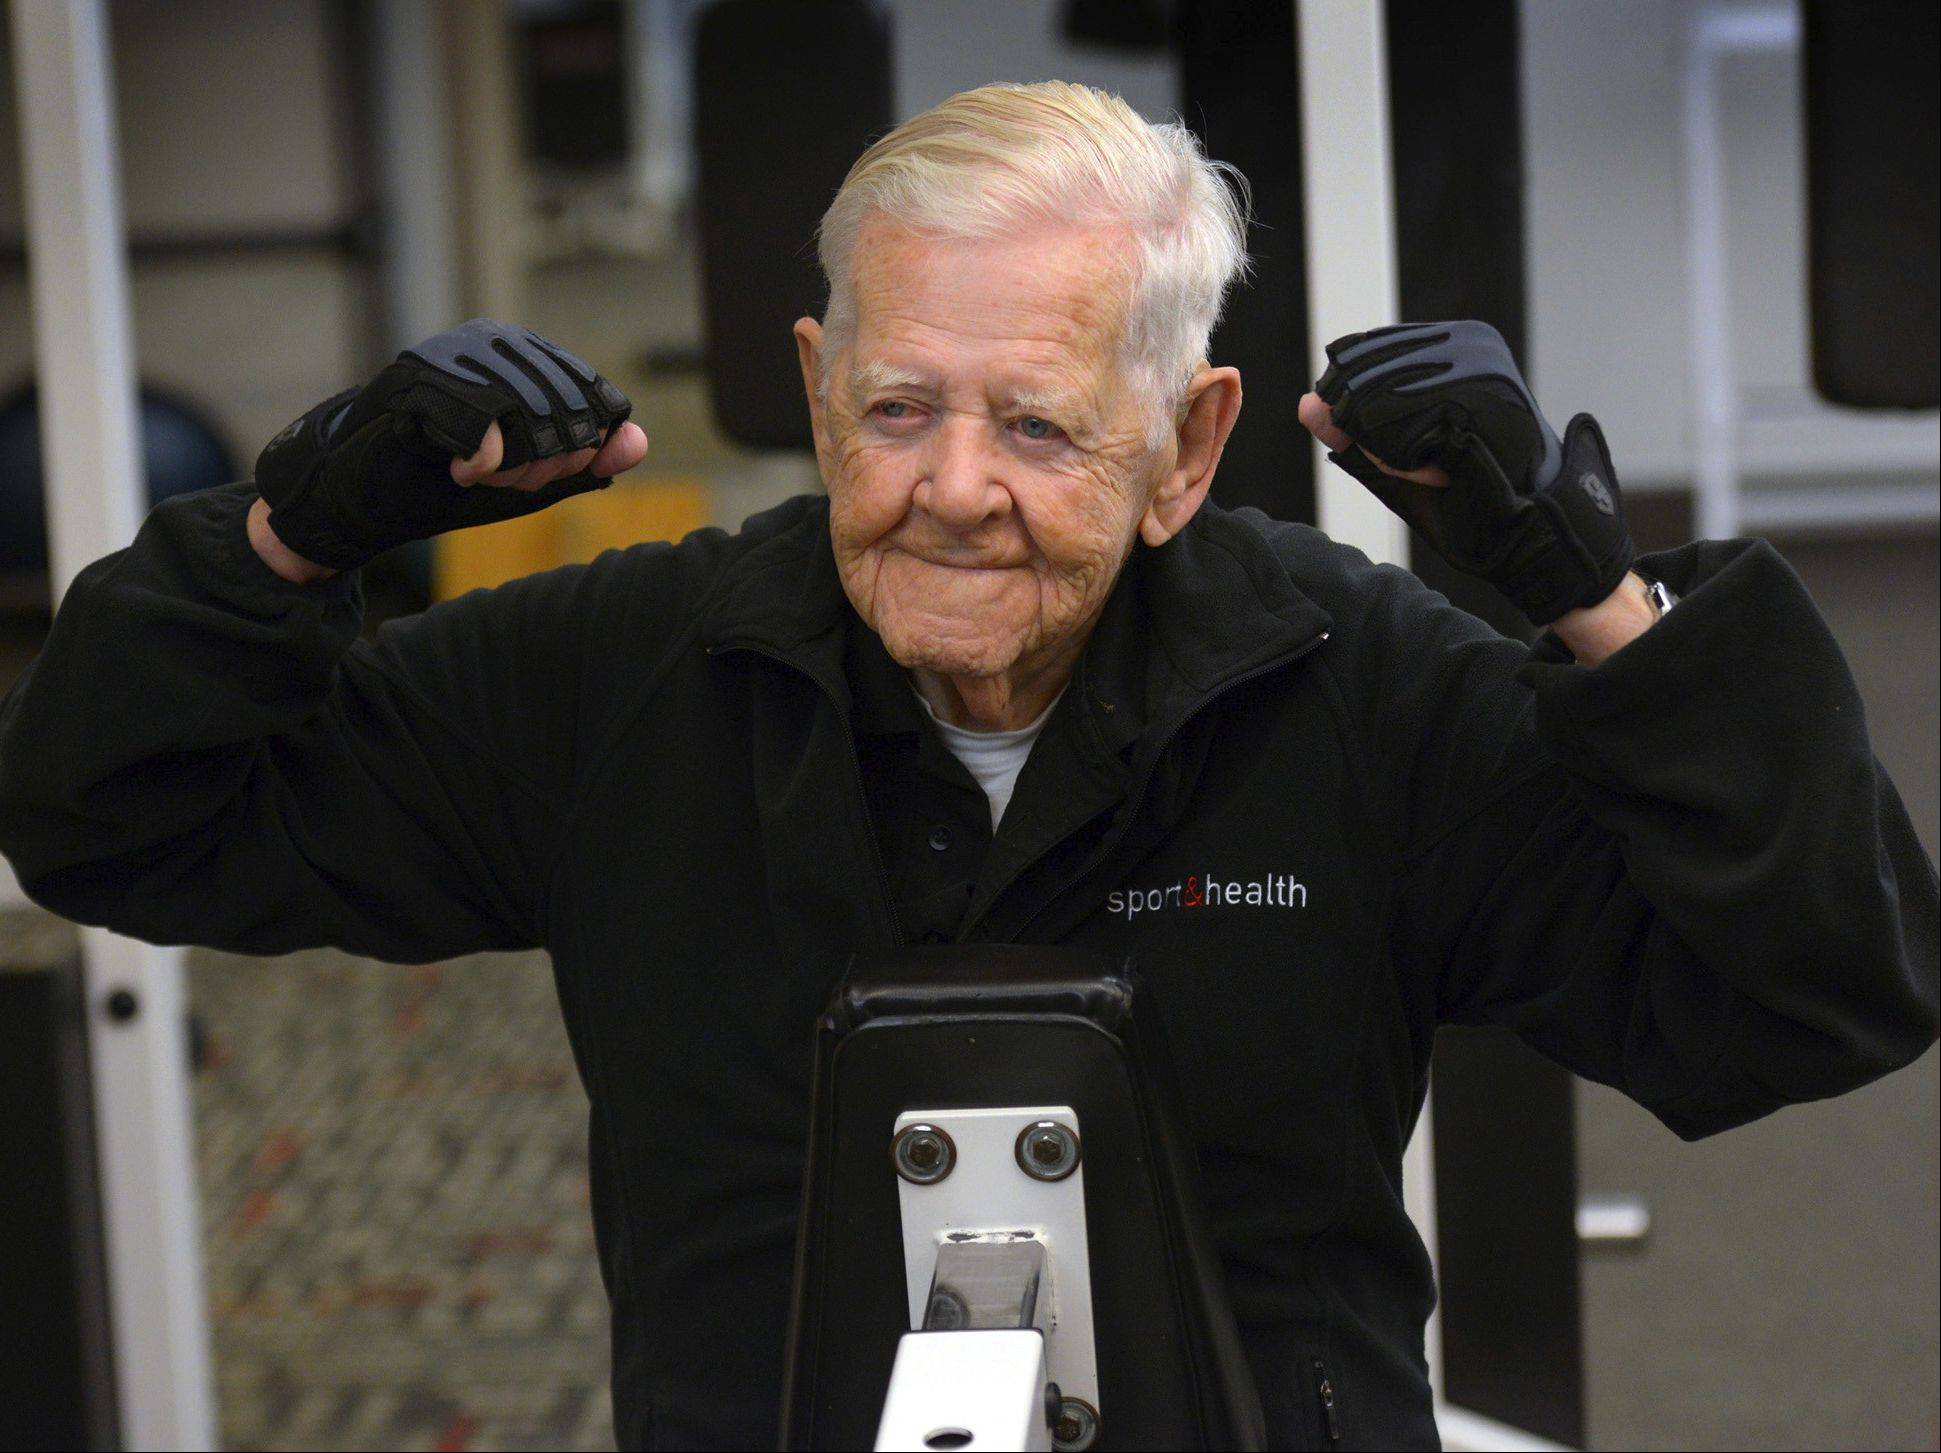 102 Year Old Ray Clark Benefits From Weekly Workouts